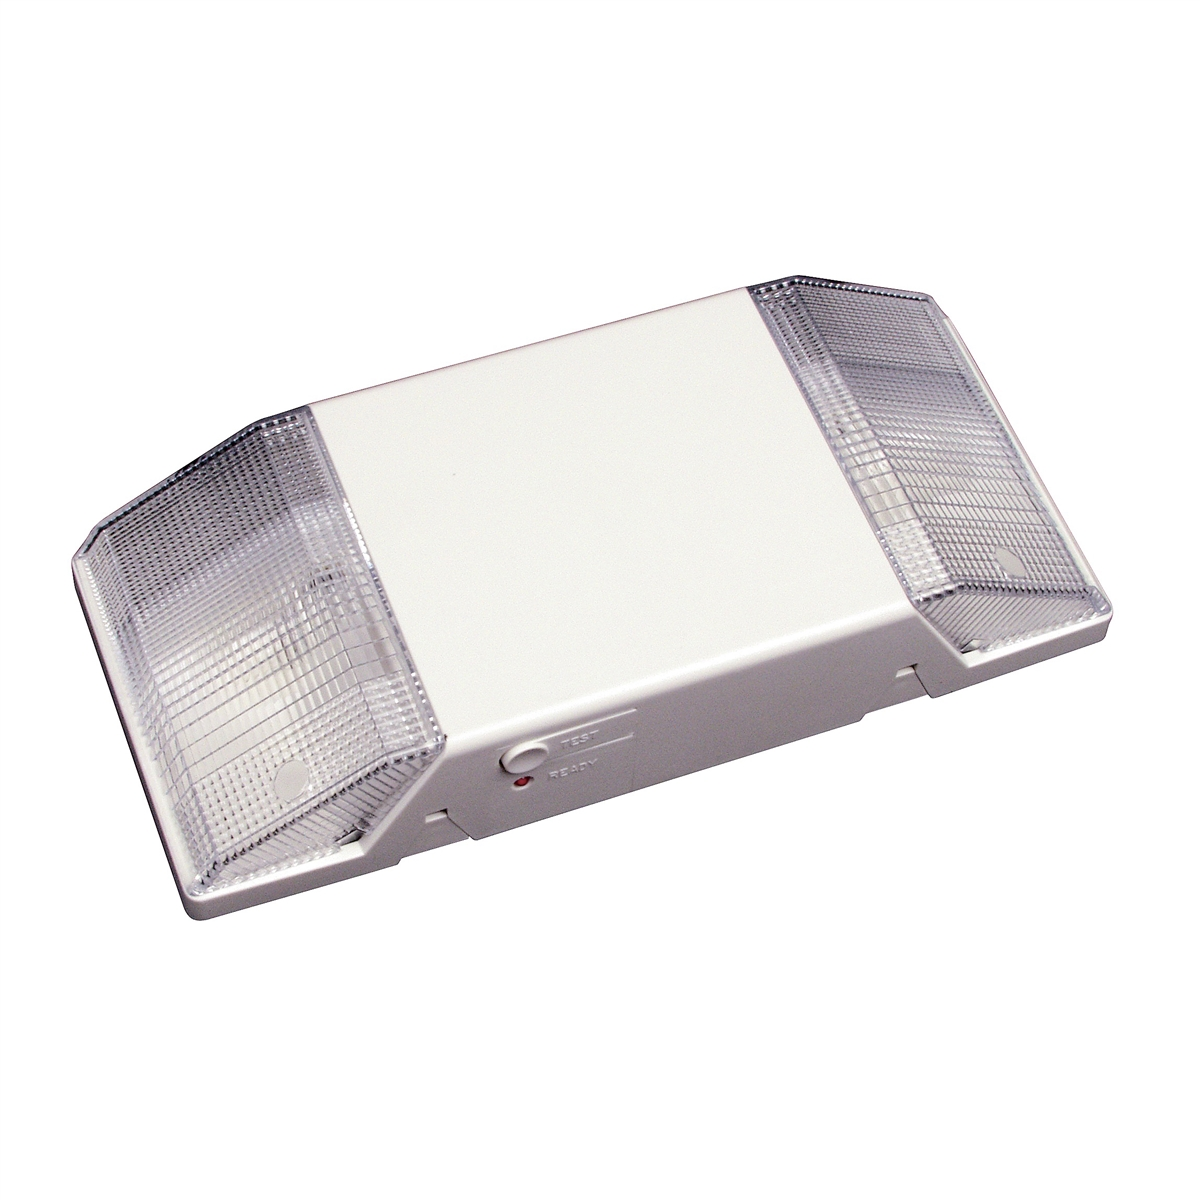 nicor 18102 compact thermoplastic emergency lighting unit view larger photo [ 1200 x 1200 Pixel ]